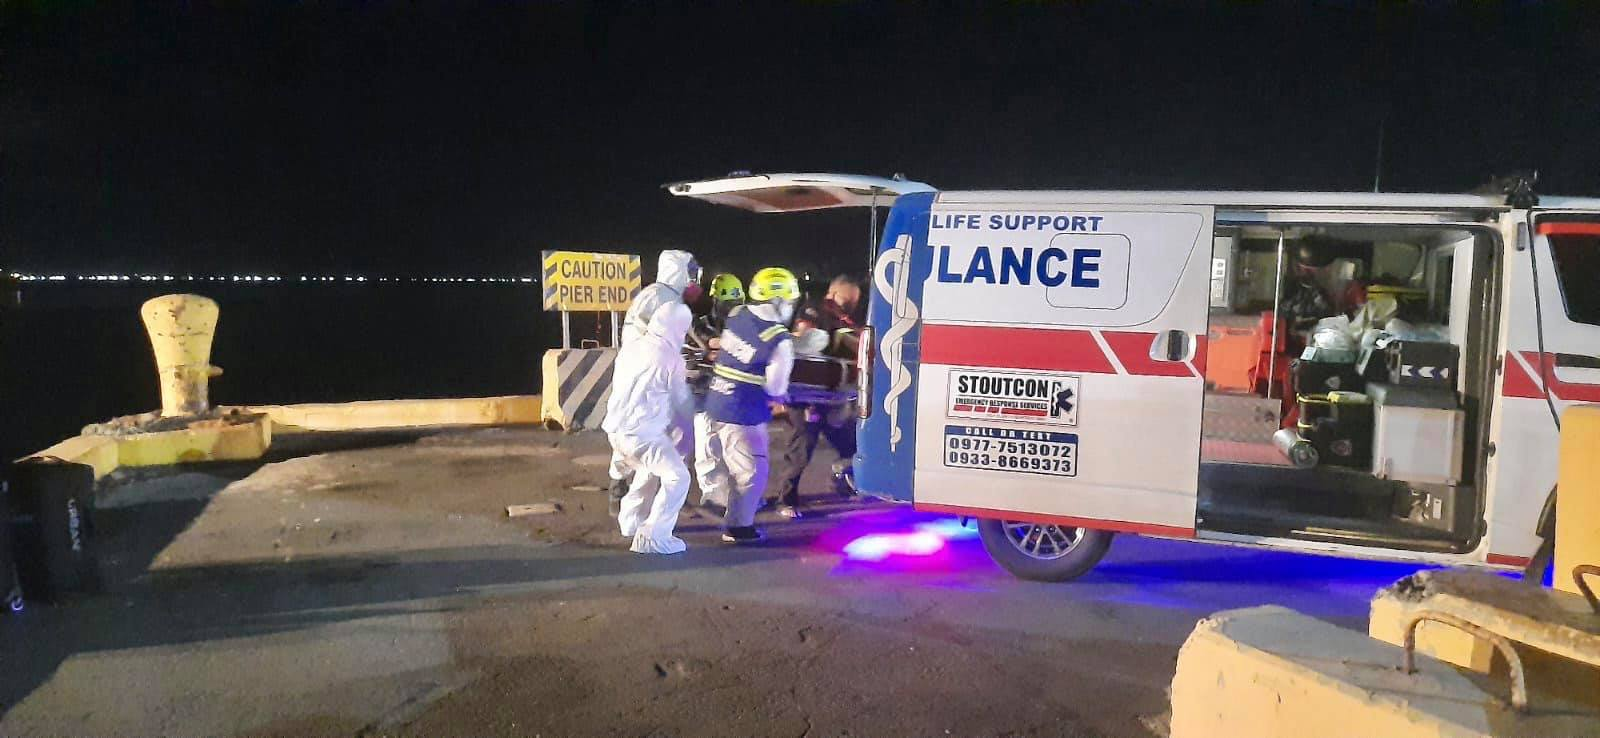 Two crew members of MV Athens Bridge from India, who were in critical condition, were brought to a medical facility in Manila